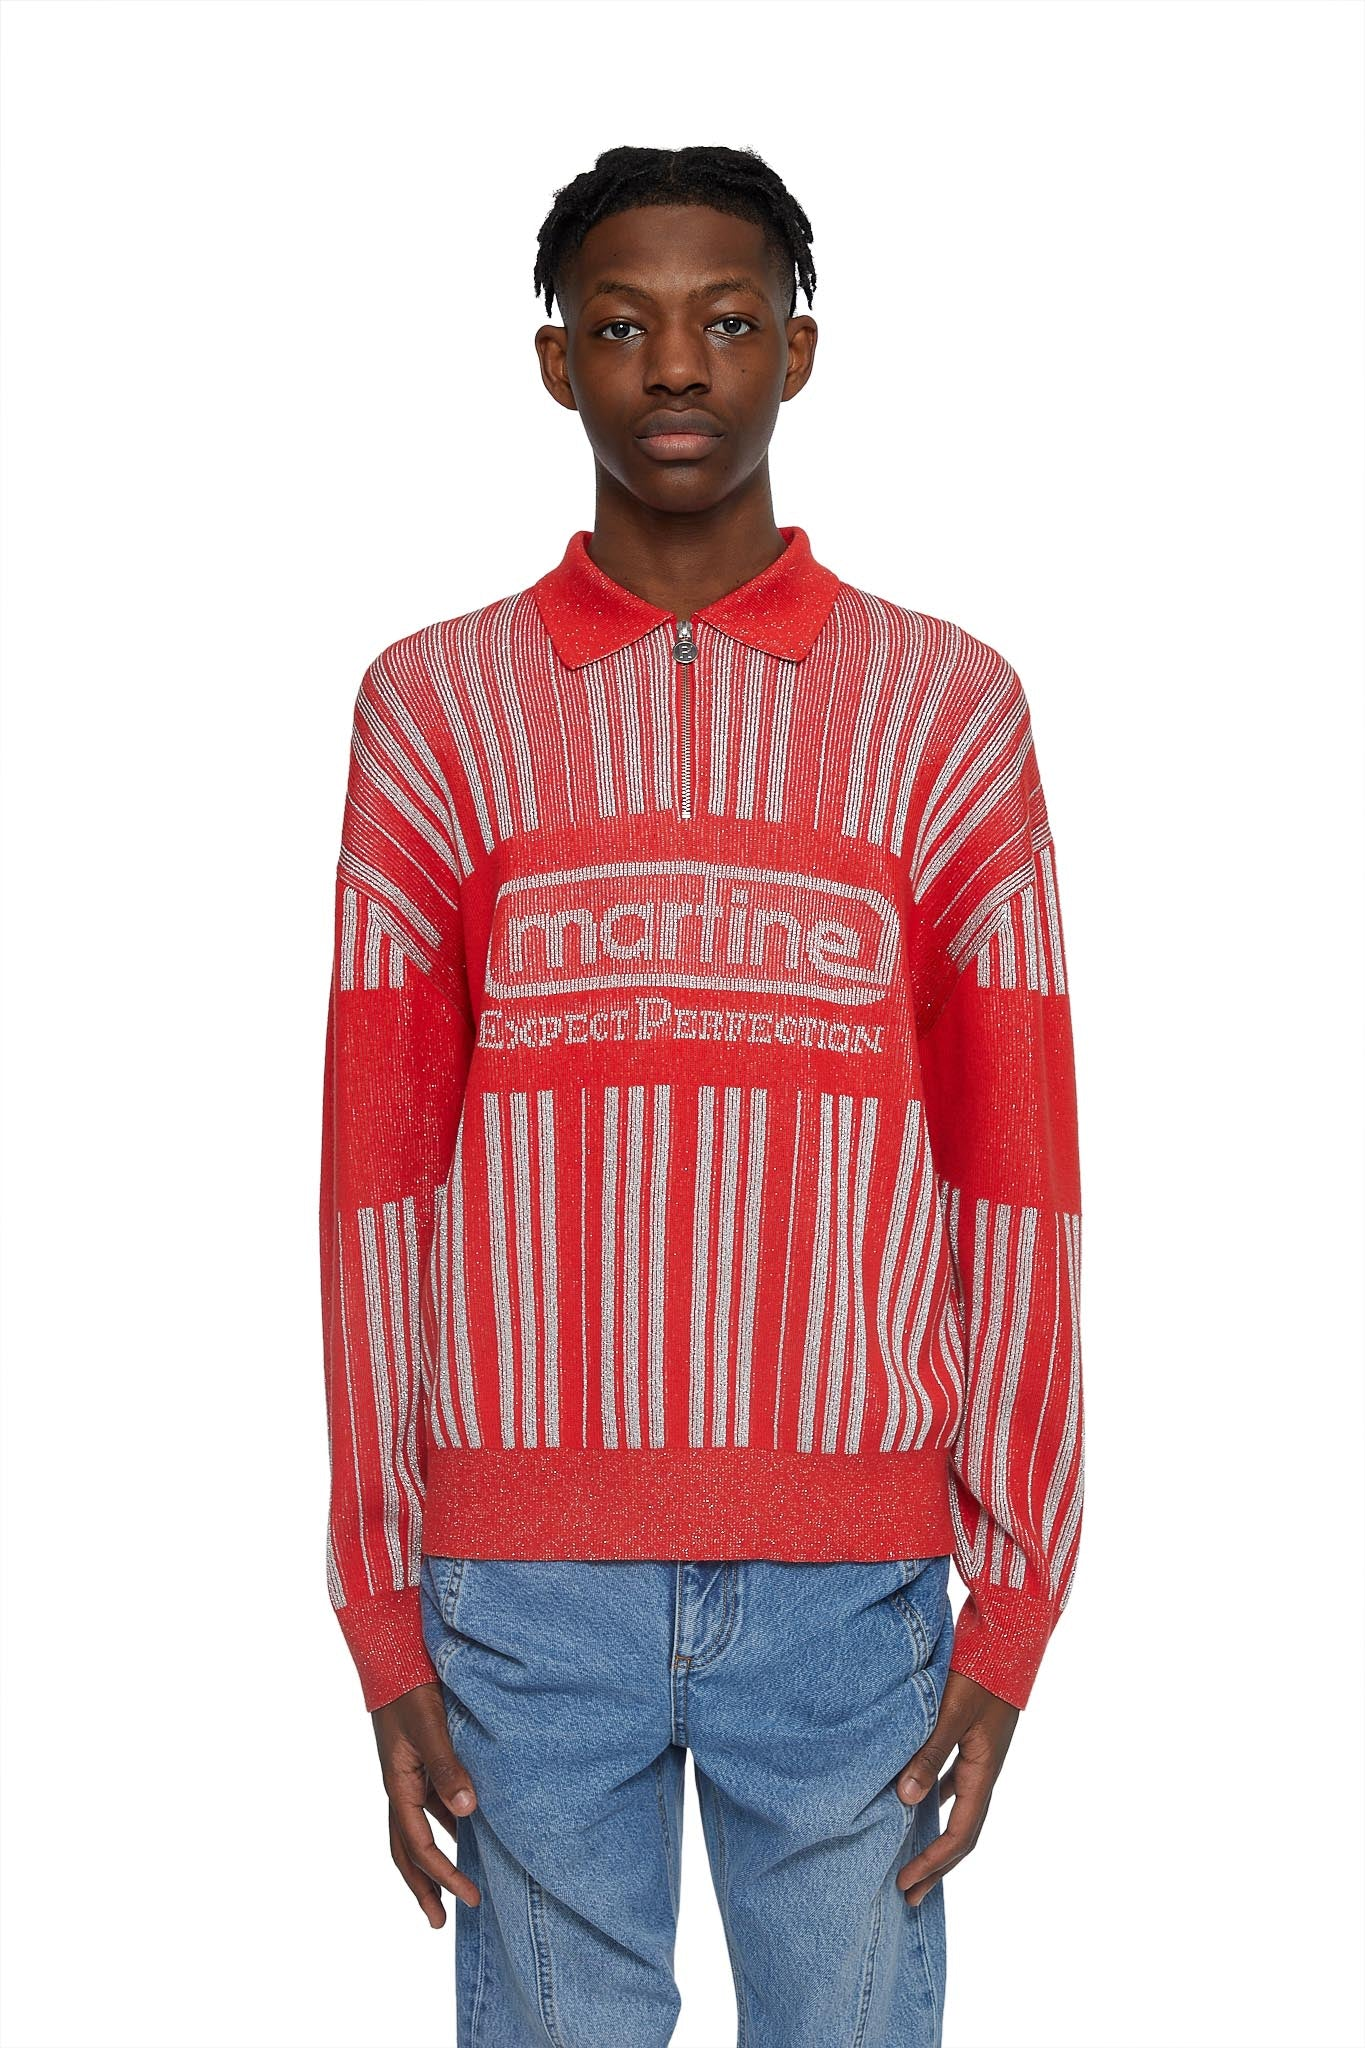 martine rose, prysm 3/4 zip polo knit, RED, MRAW20-924, SWEATER, AW20, LUREX, MENS, SWEATER